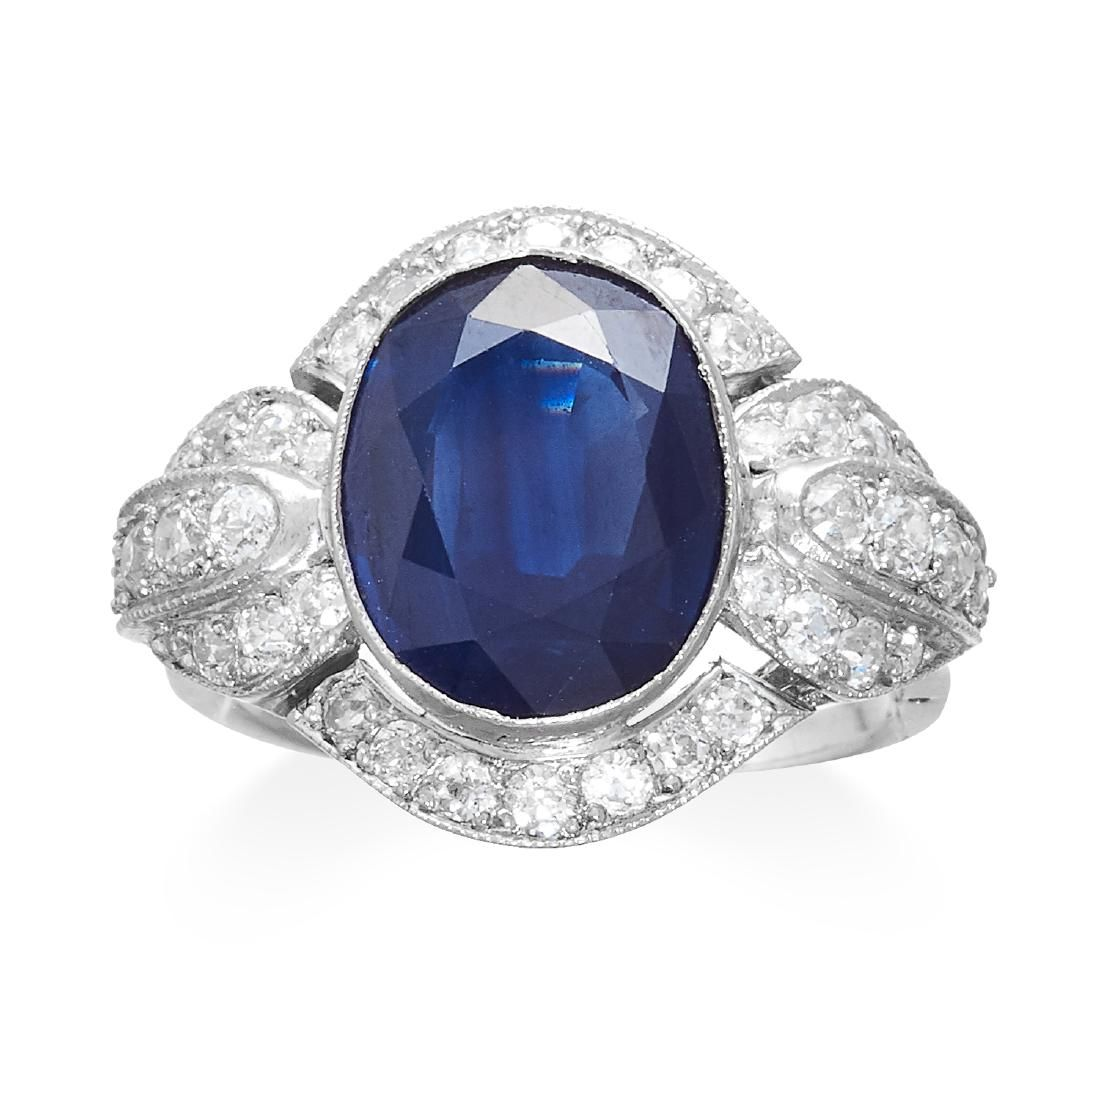 AN ART DECO SAPPHIRE AND DIAMOND RING in 18ct white